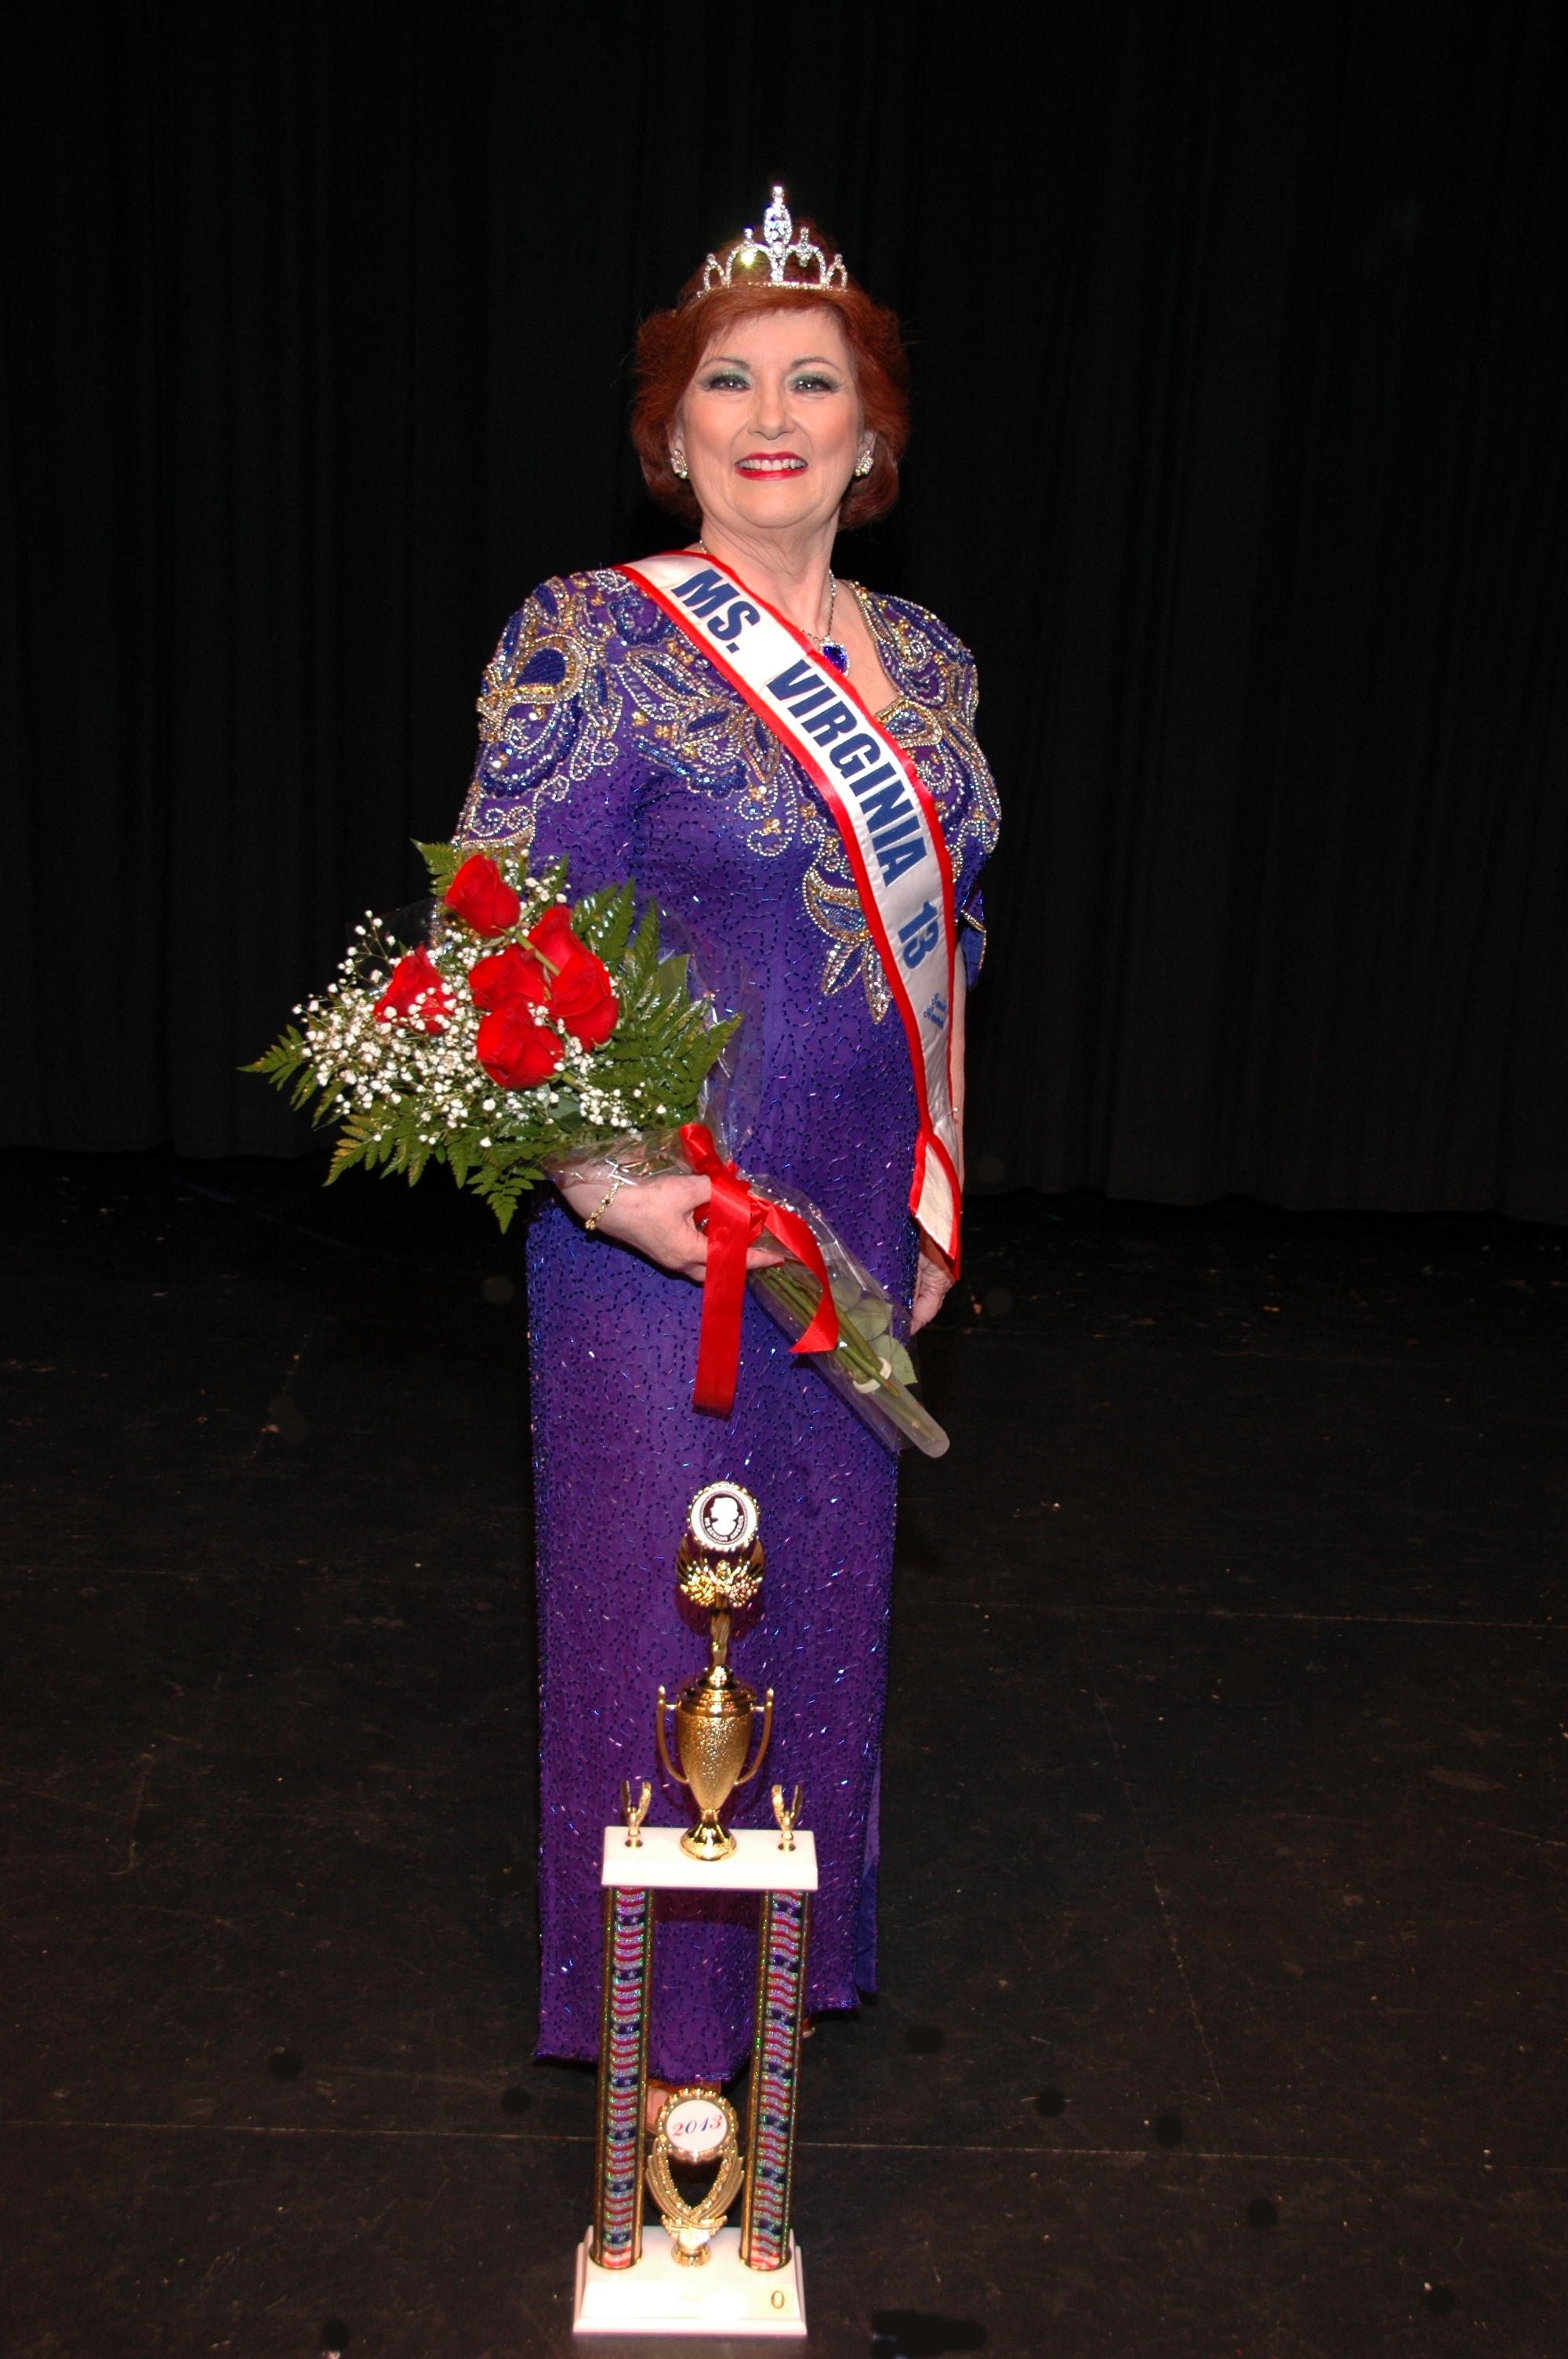 Our newly crowned Ms. Virginia Senior America is also the winner of